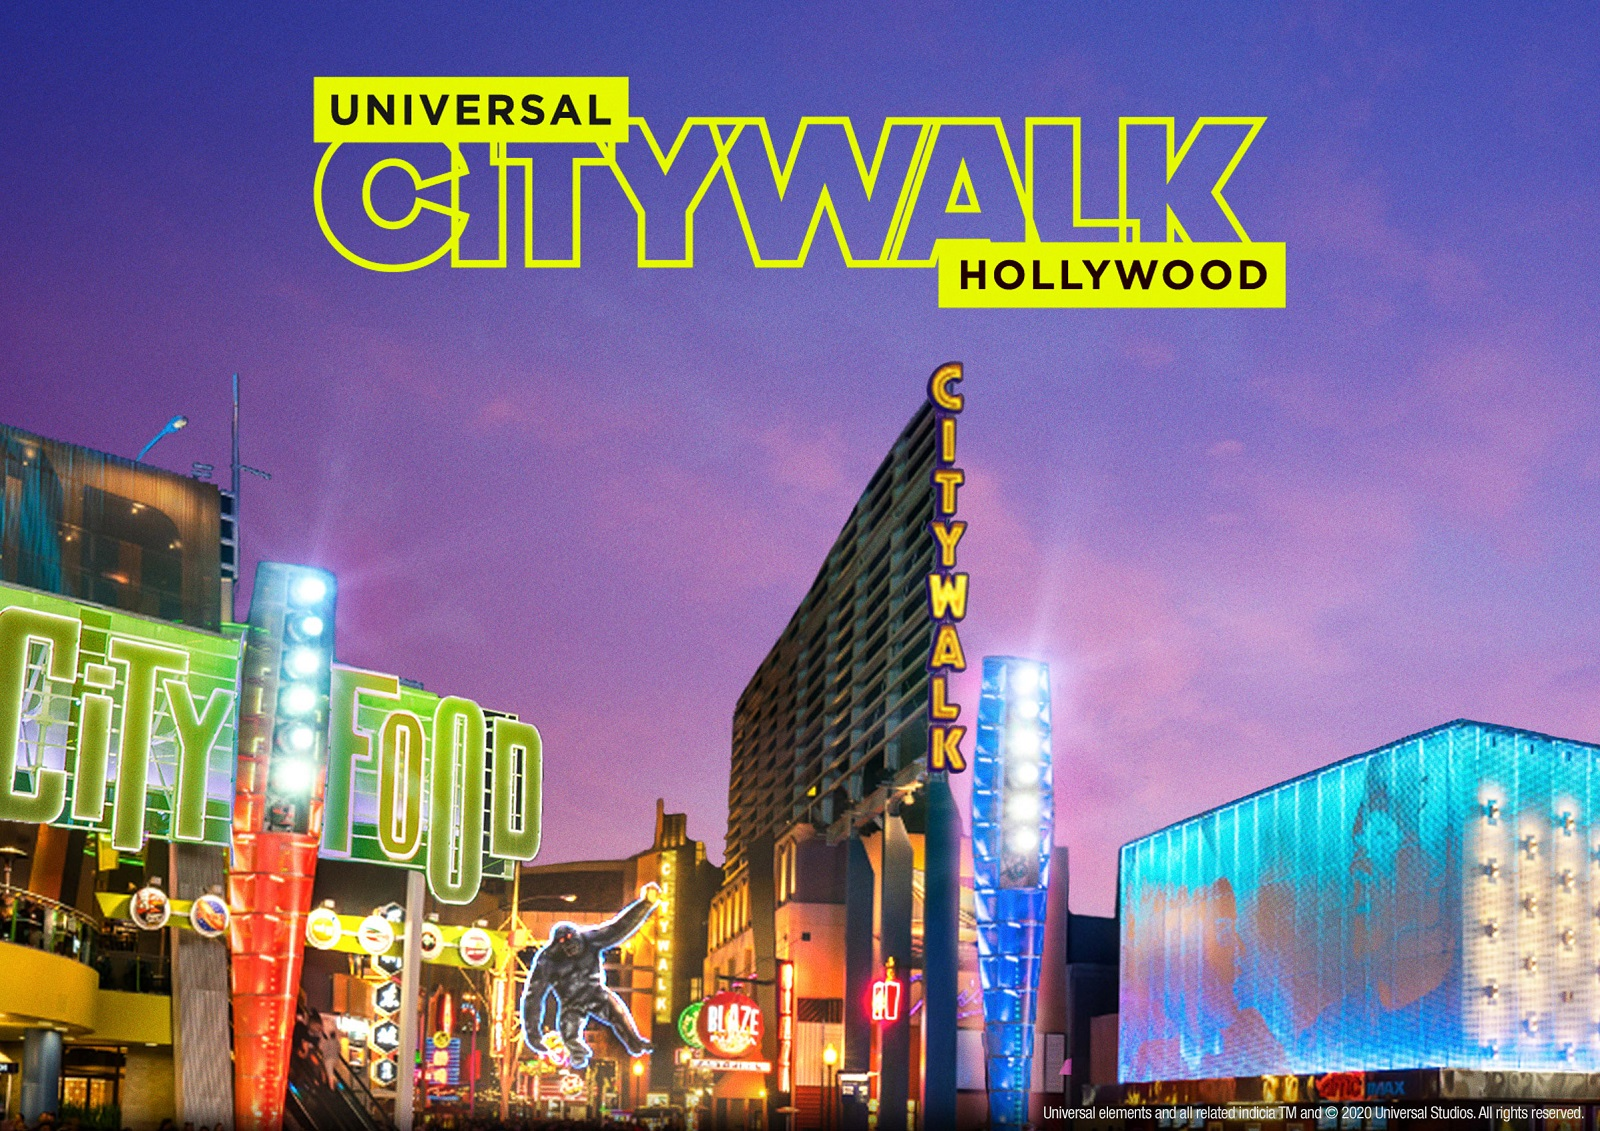 Hollywood of Rock Music and Entertainment